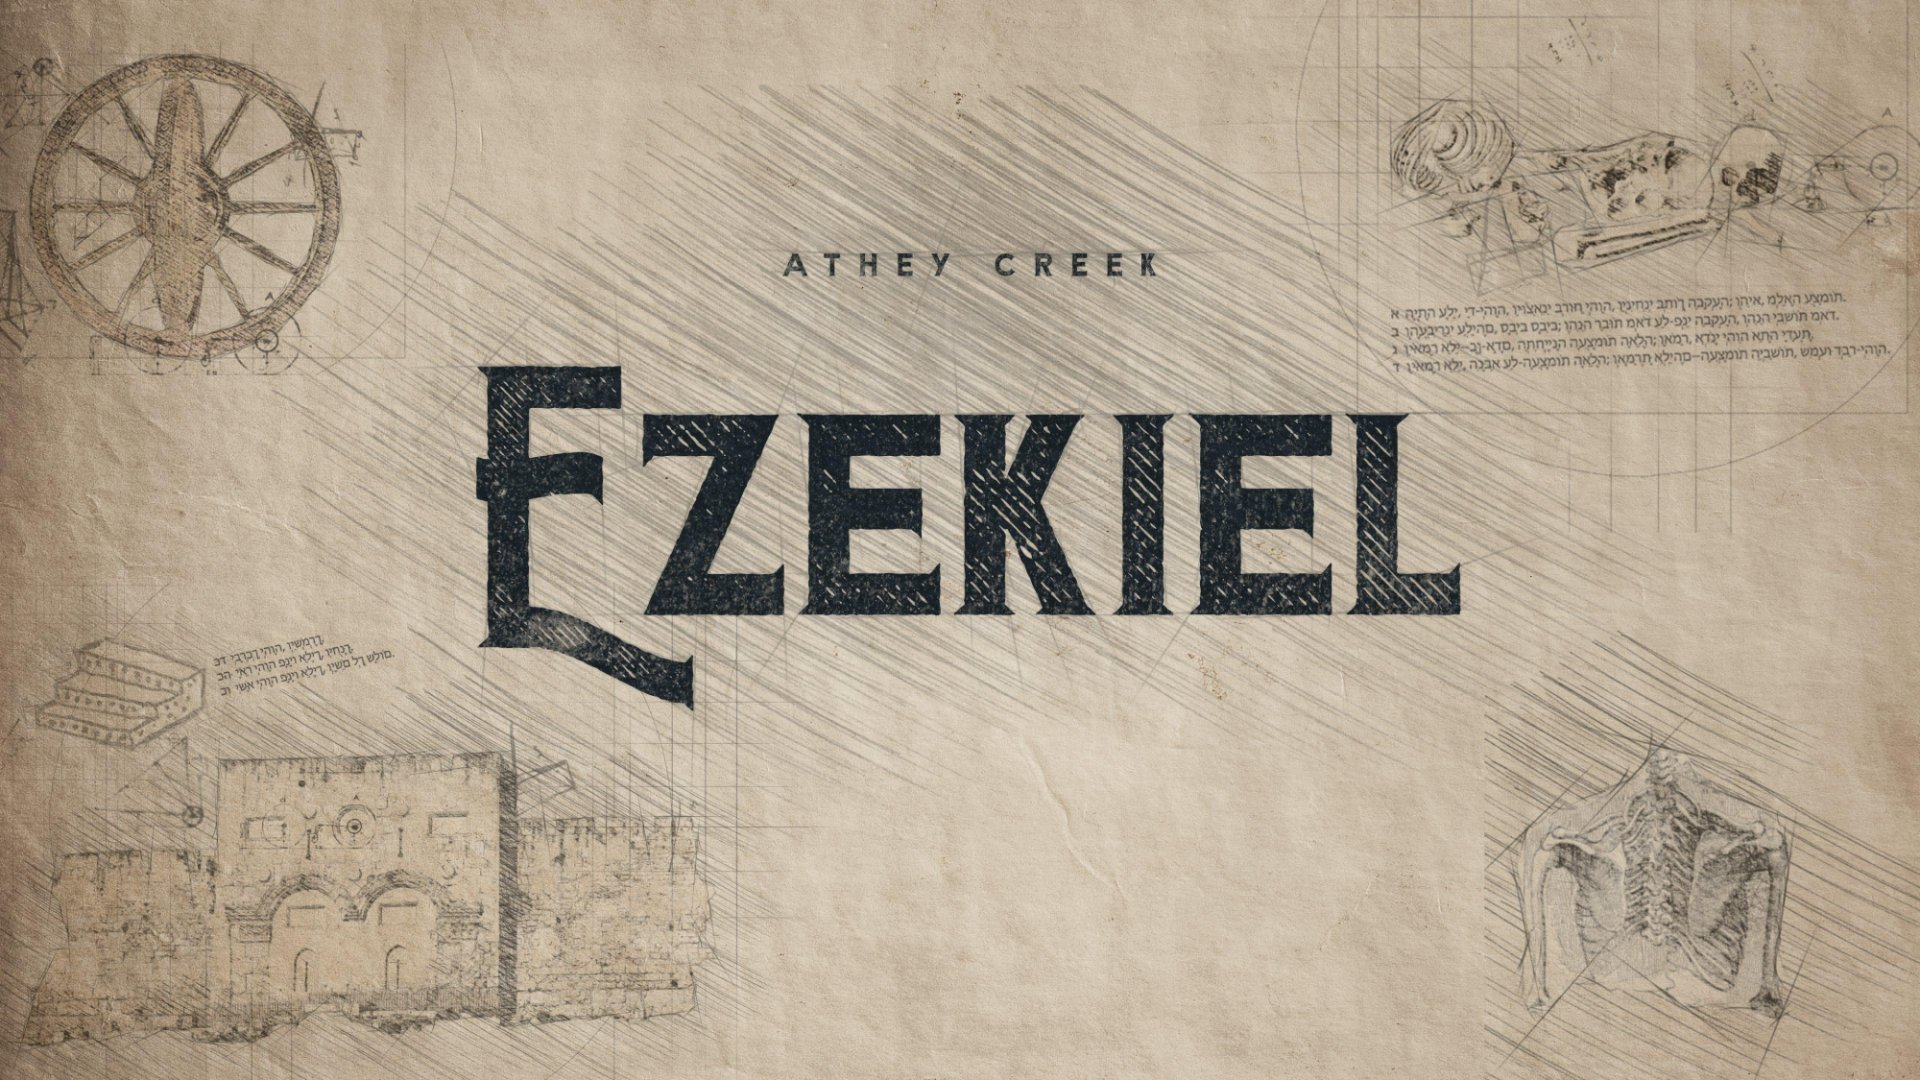 Teaching artwork for Ezekiel